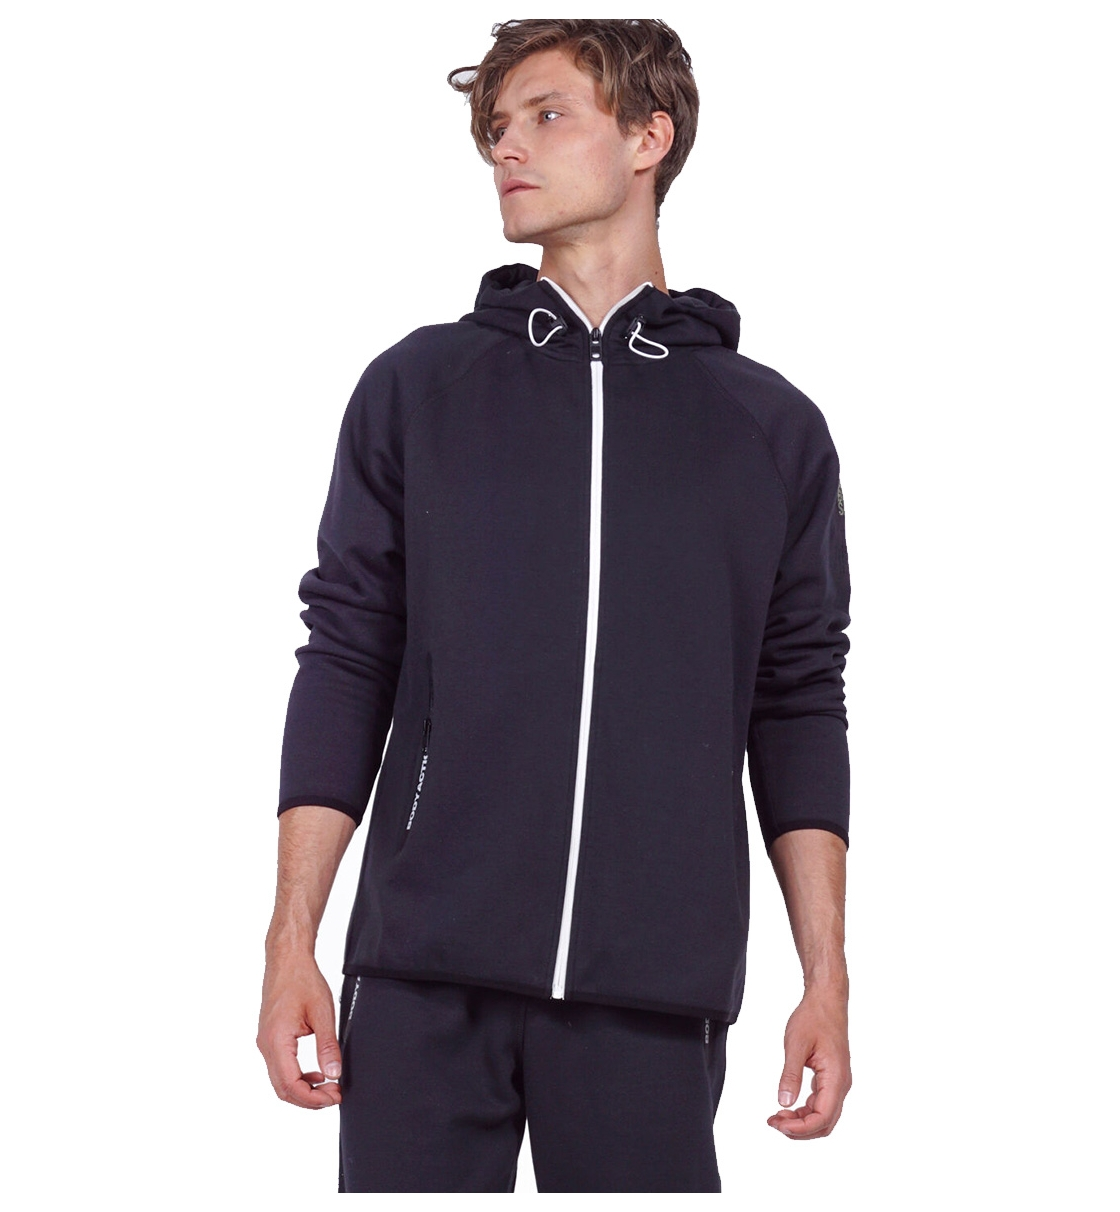 Body Action Fw19 Men Gym Tech Zip Hoodie